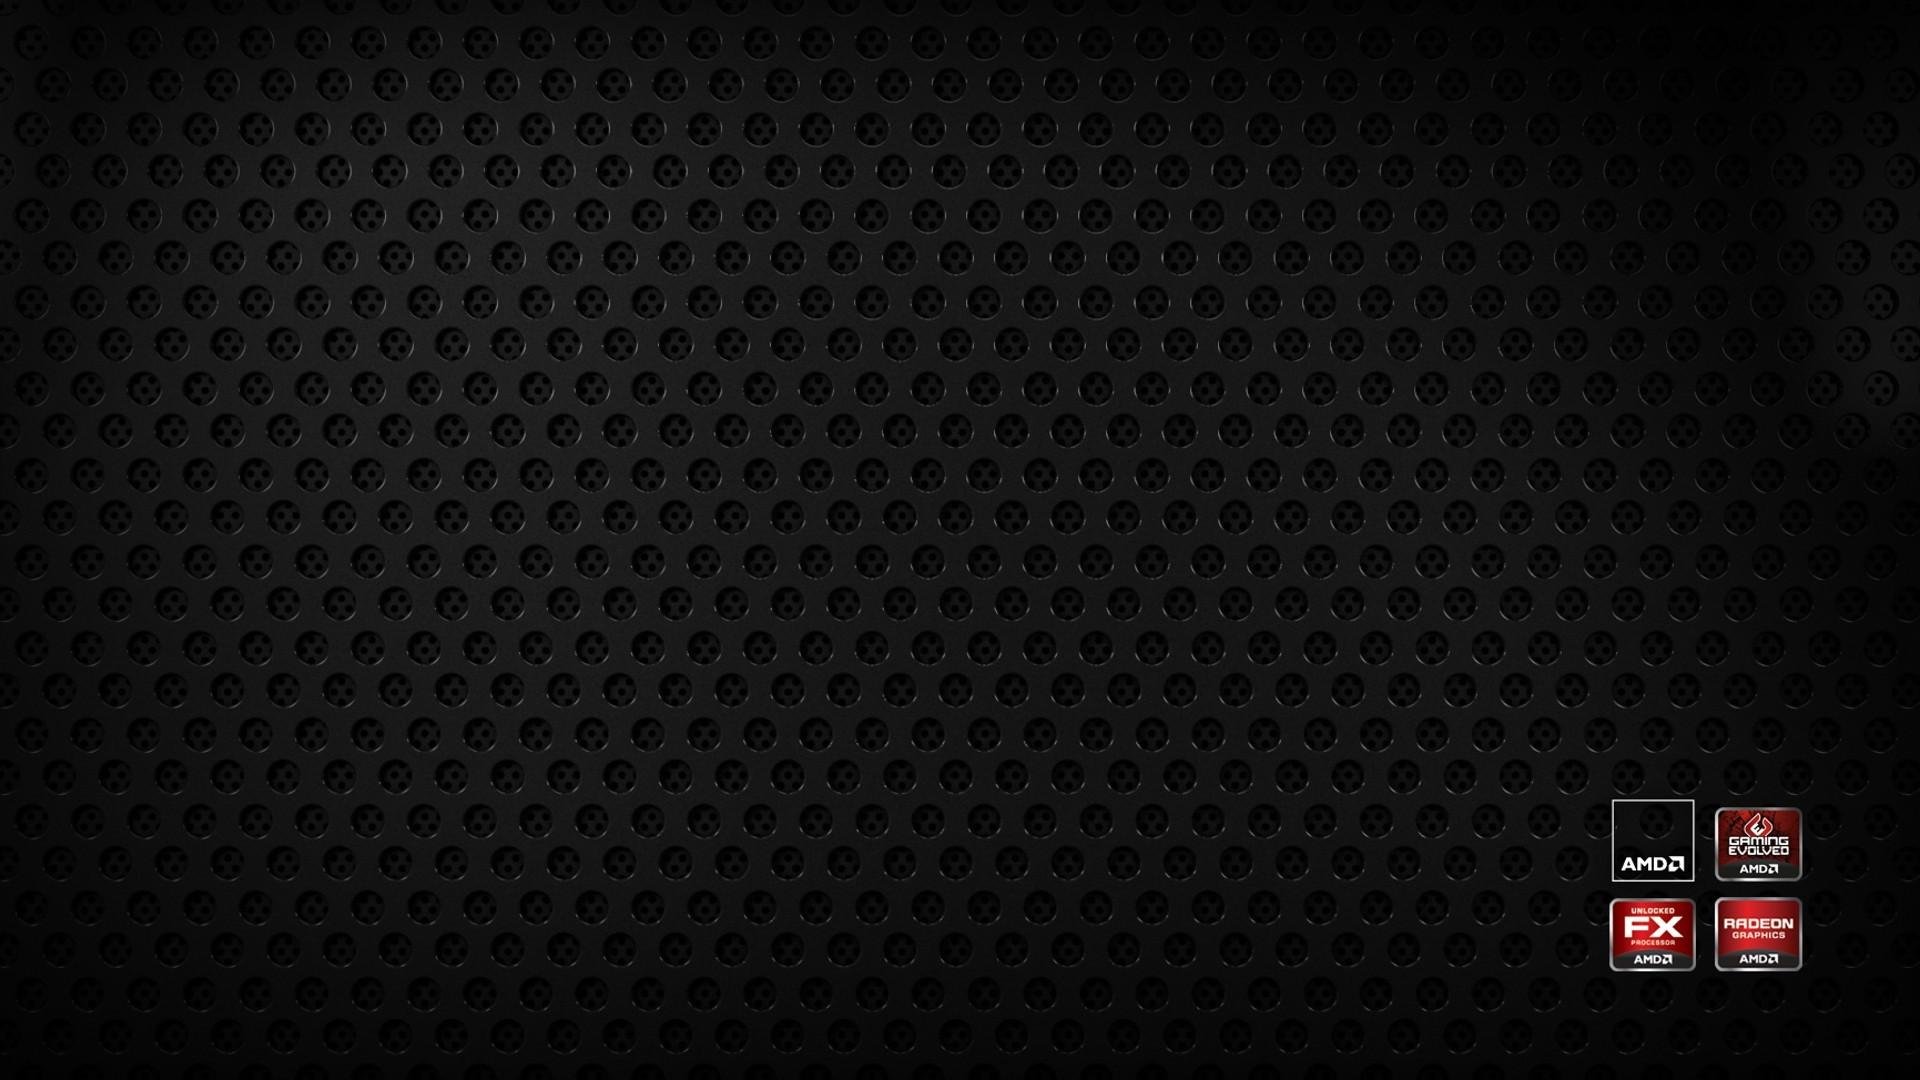 download wallpapers amd fx - photo #35